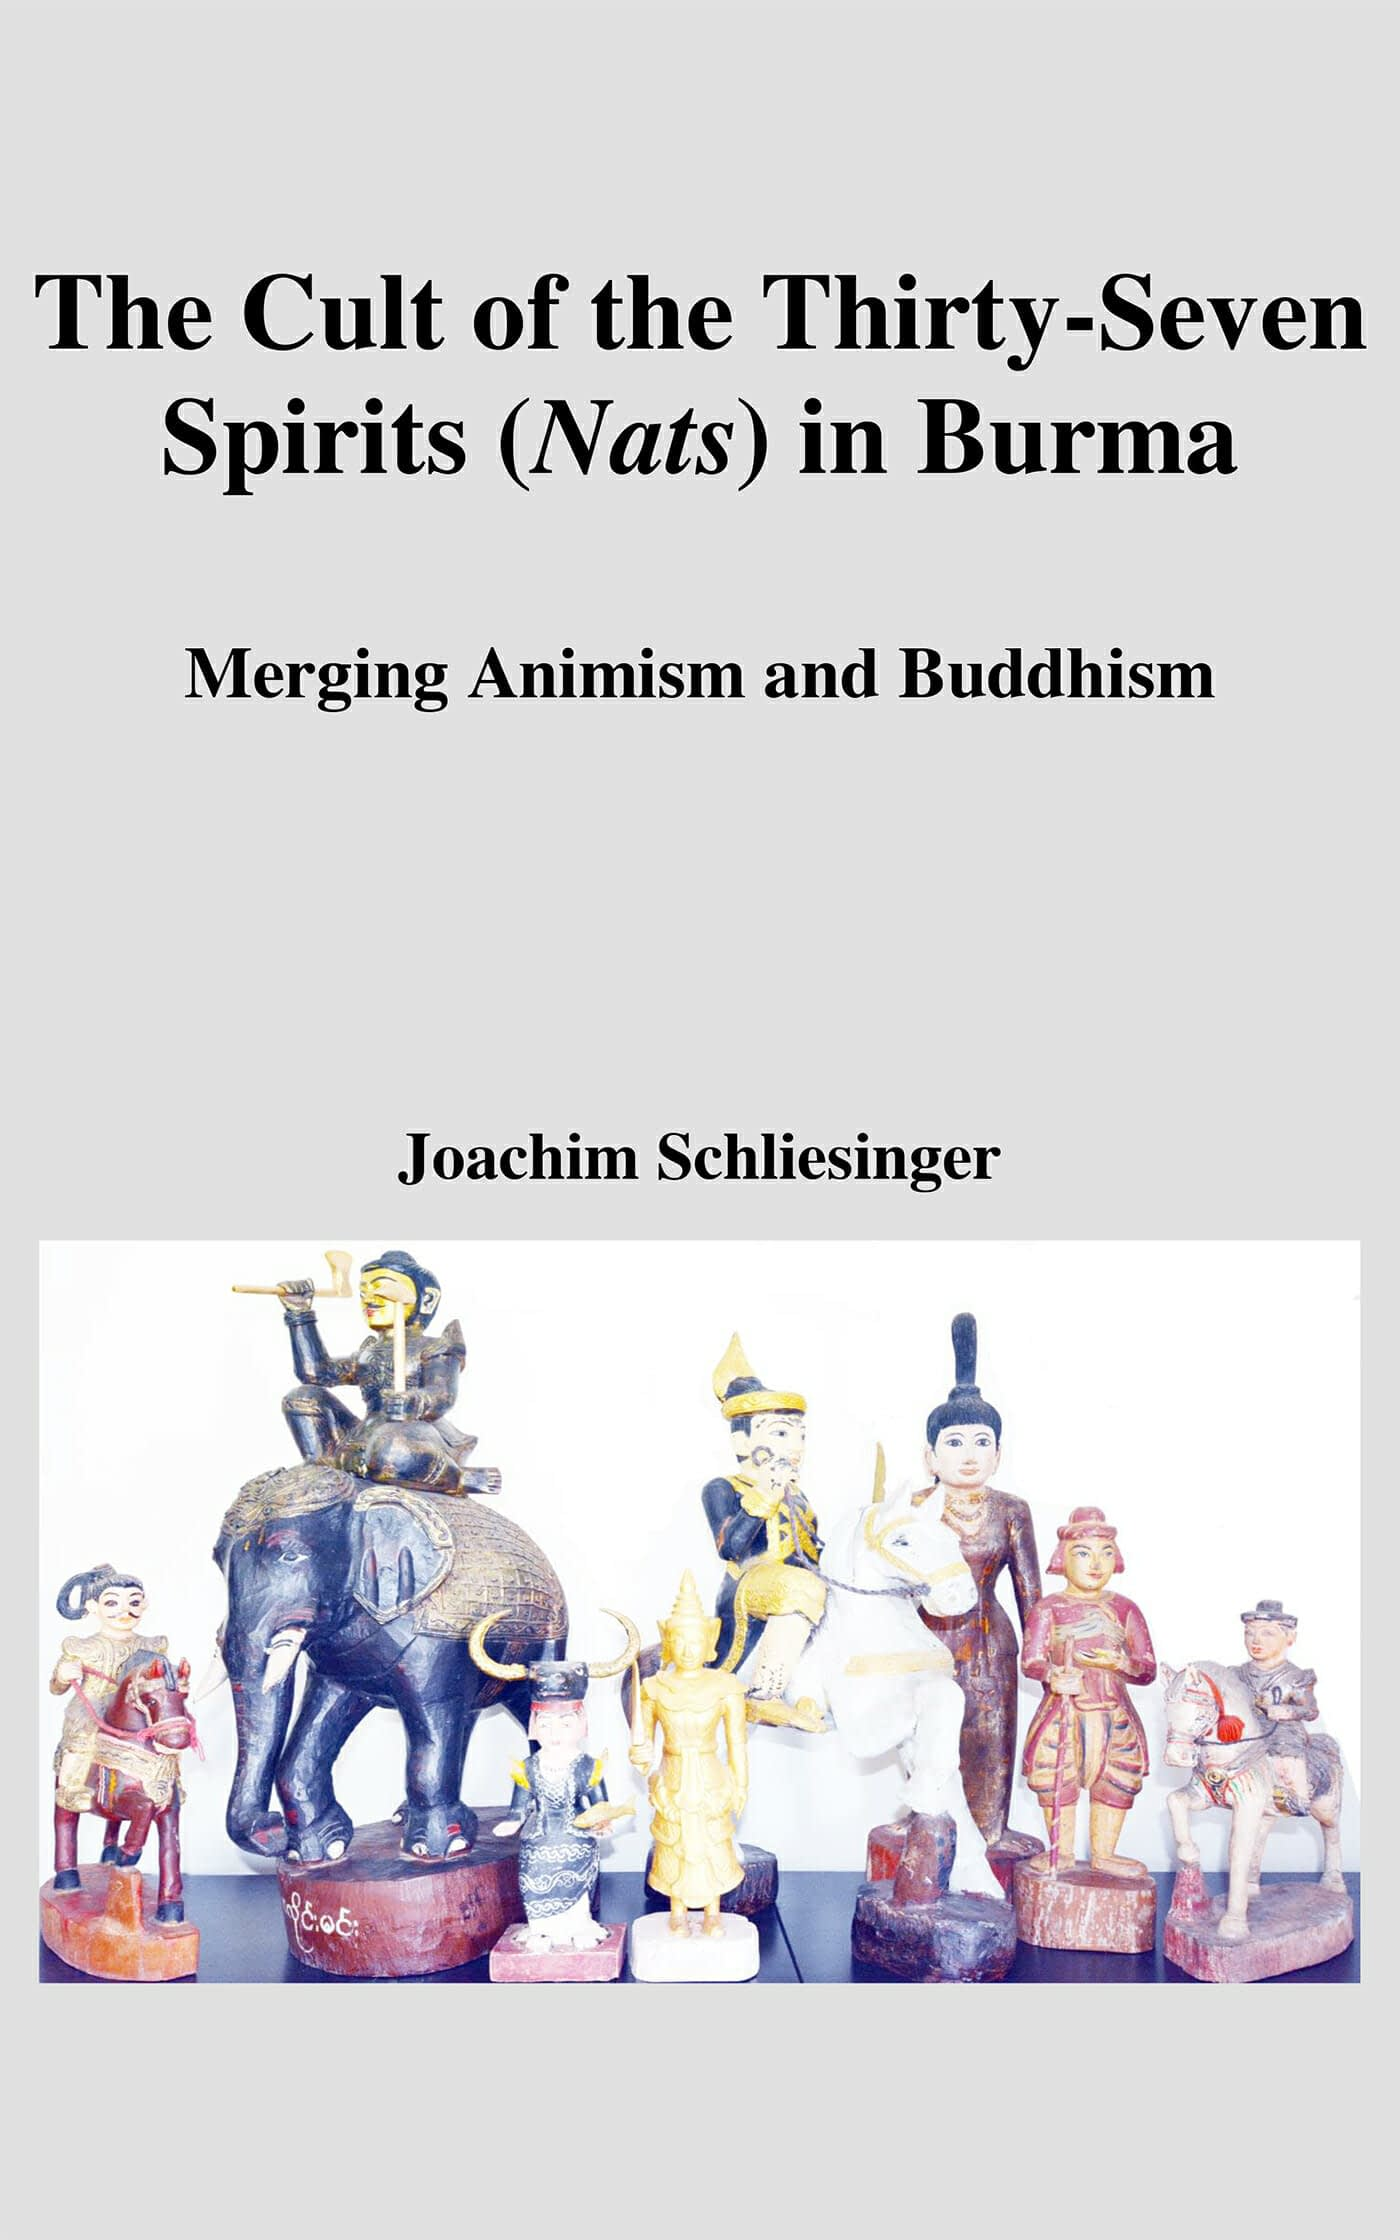 The Cult of the Thirty-Seven Spirits (Nats) in Burma